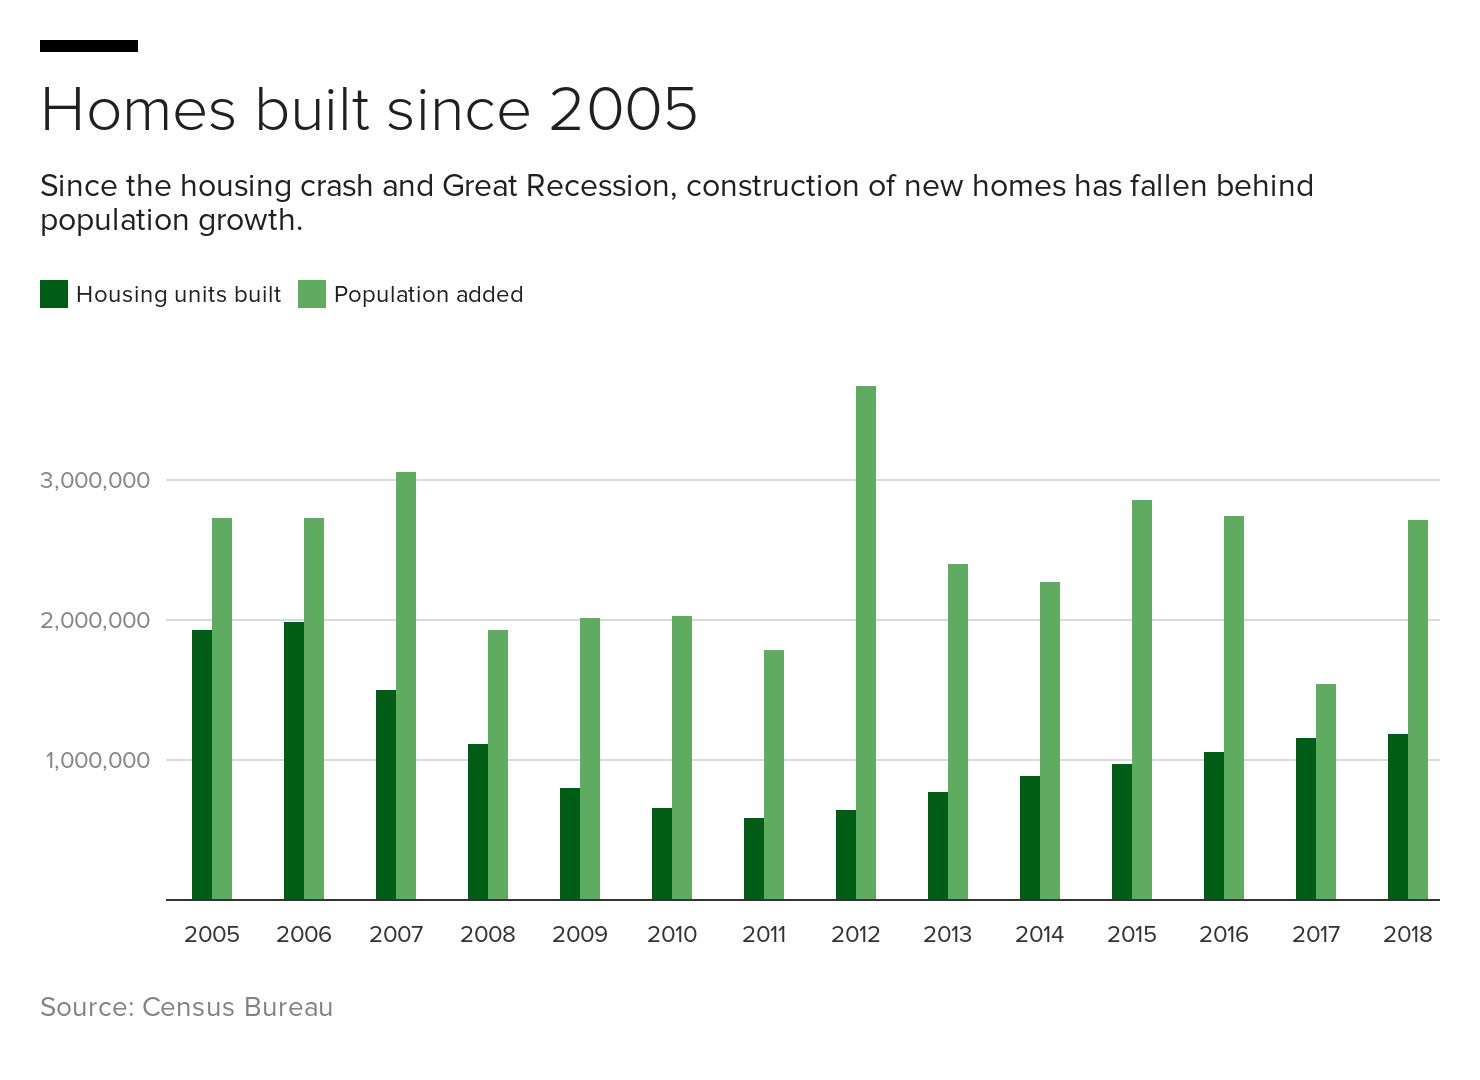 rksml-homes-built-since-2005.png